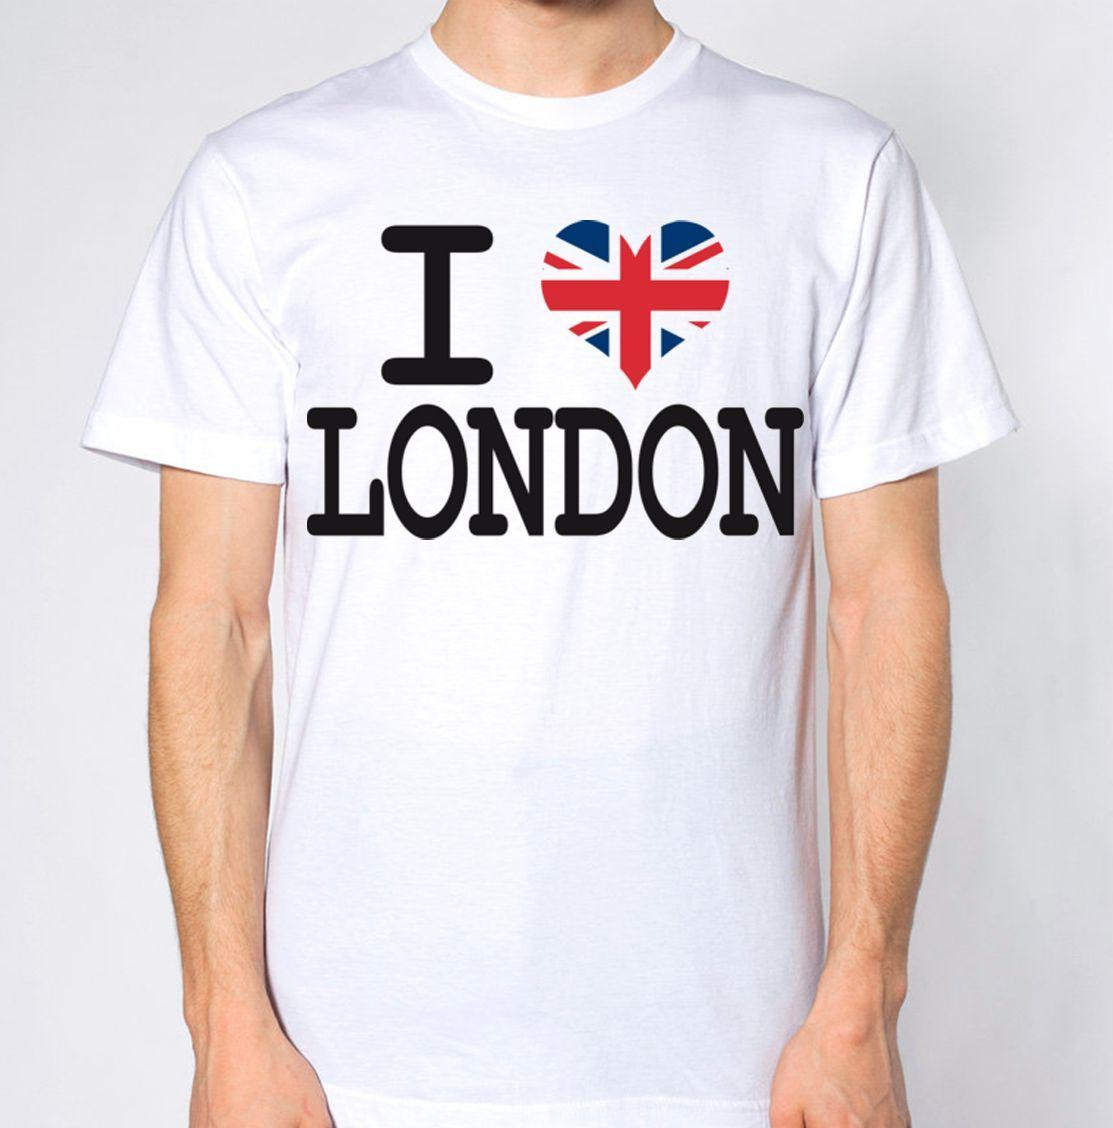 1e704c25c I Love London New T Shirt UK United Kingdom Top Britain Tee British England  LDN Funny Unisex Casual Coolest Shirt Tees T Shirts From Clothing_dealss,  ...